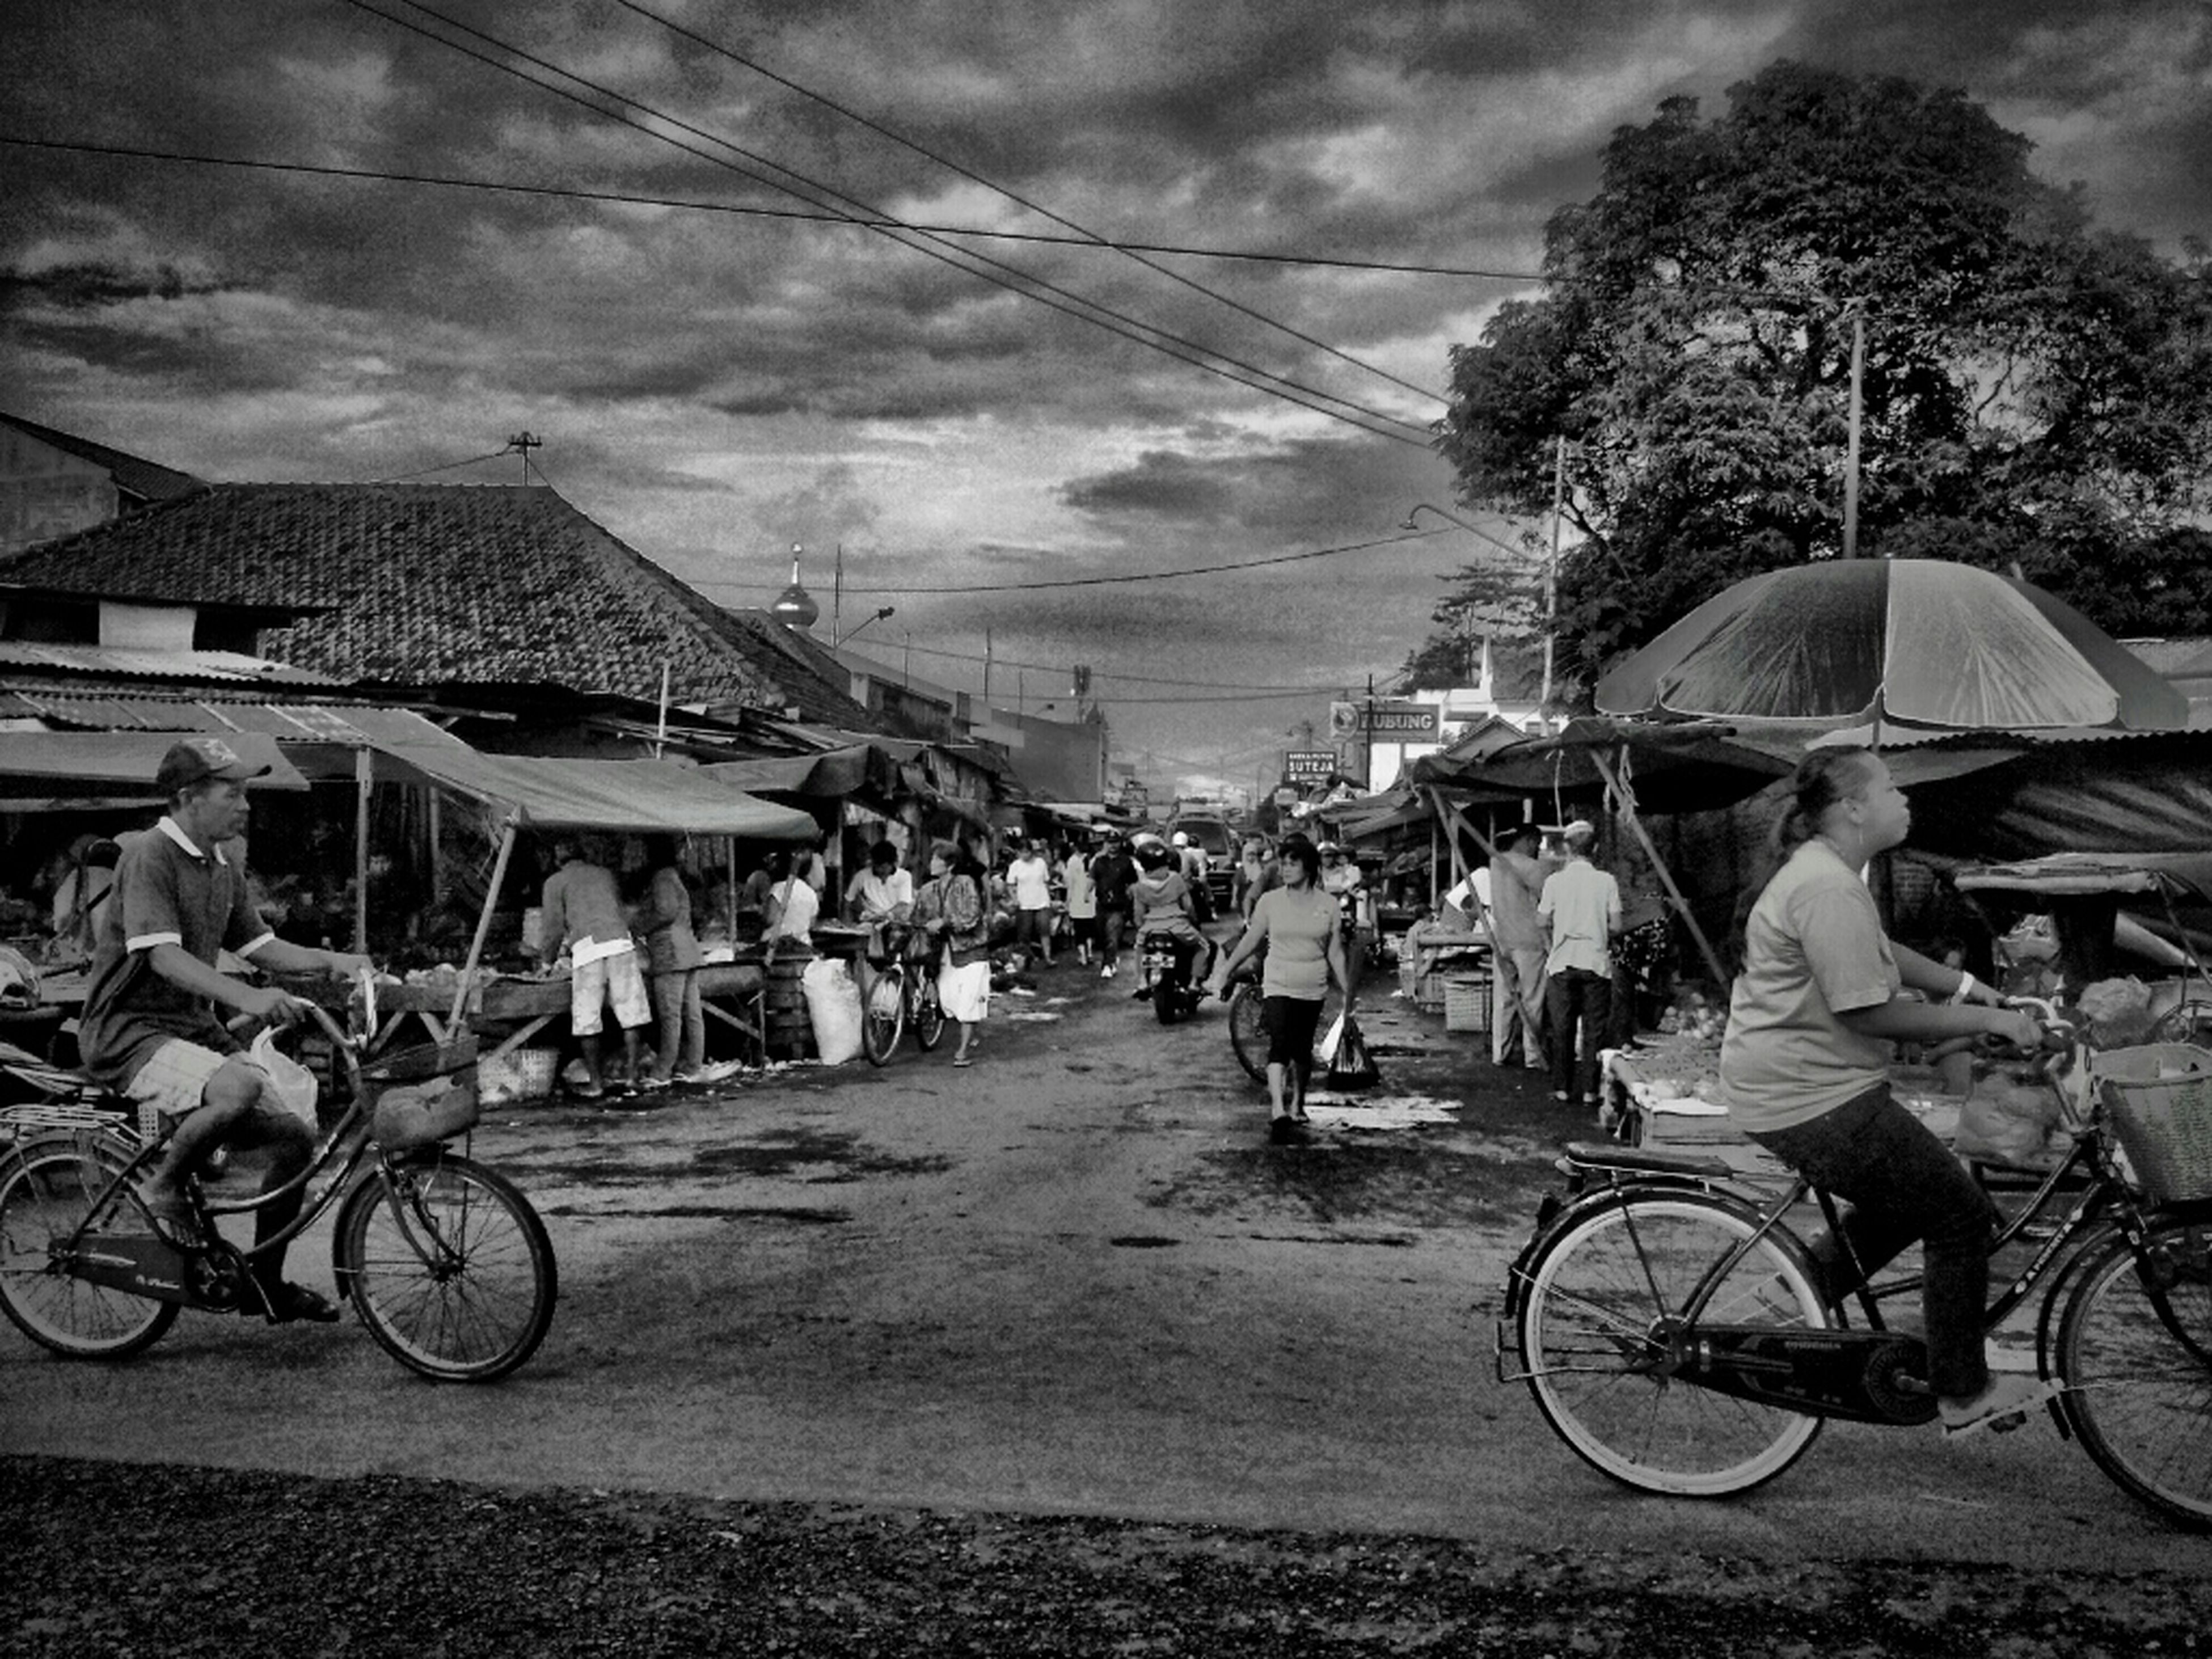 bicycle, transportation, mode of transport, land vehicle, sky, parking, parked, building exterior, architecture, stationary, street, built structure, men, cloud - sky, tree, travel, person, cobblestone, large group of people